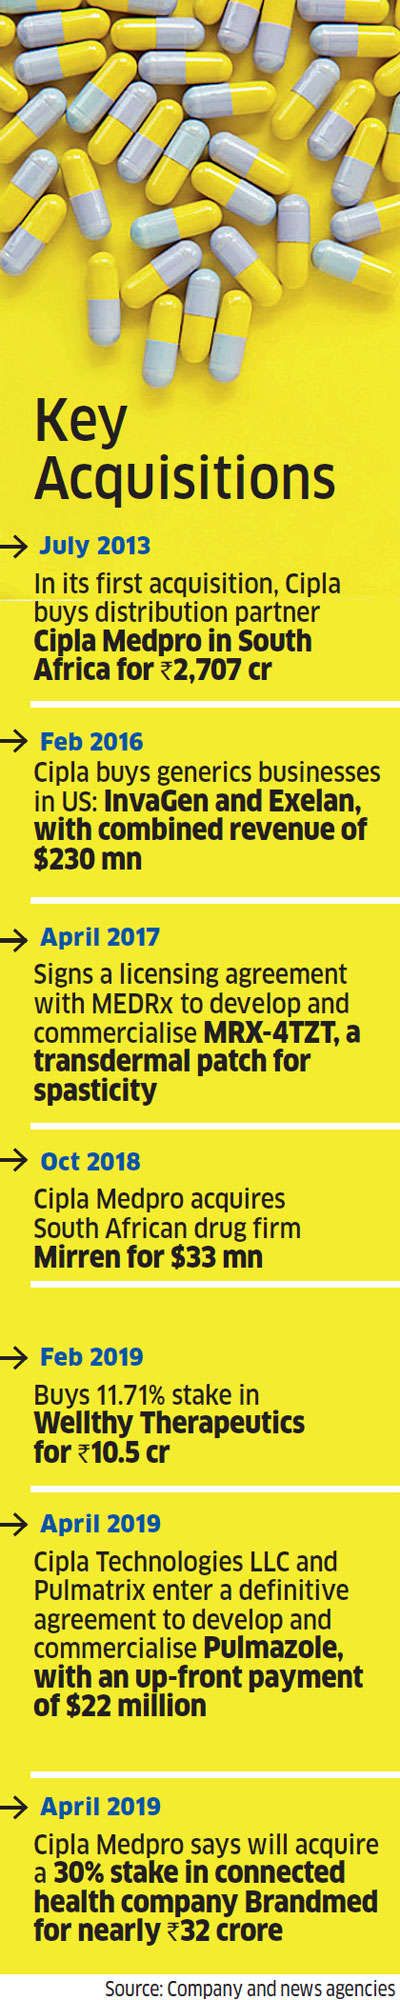 Cipla is undergoing a big transformation and is doing